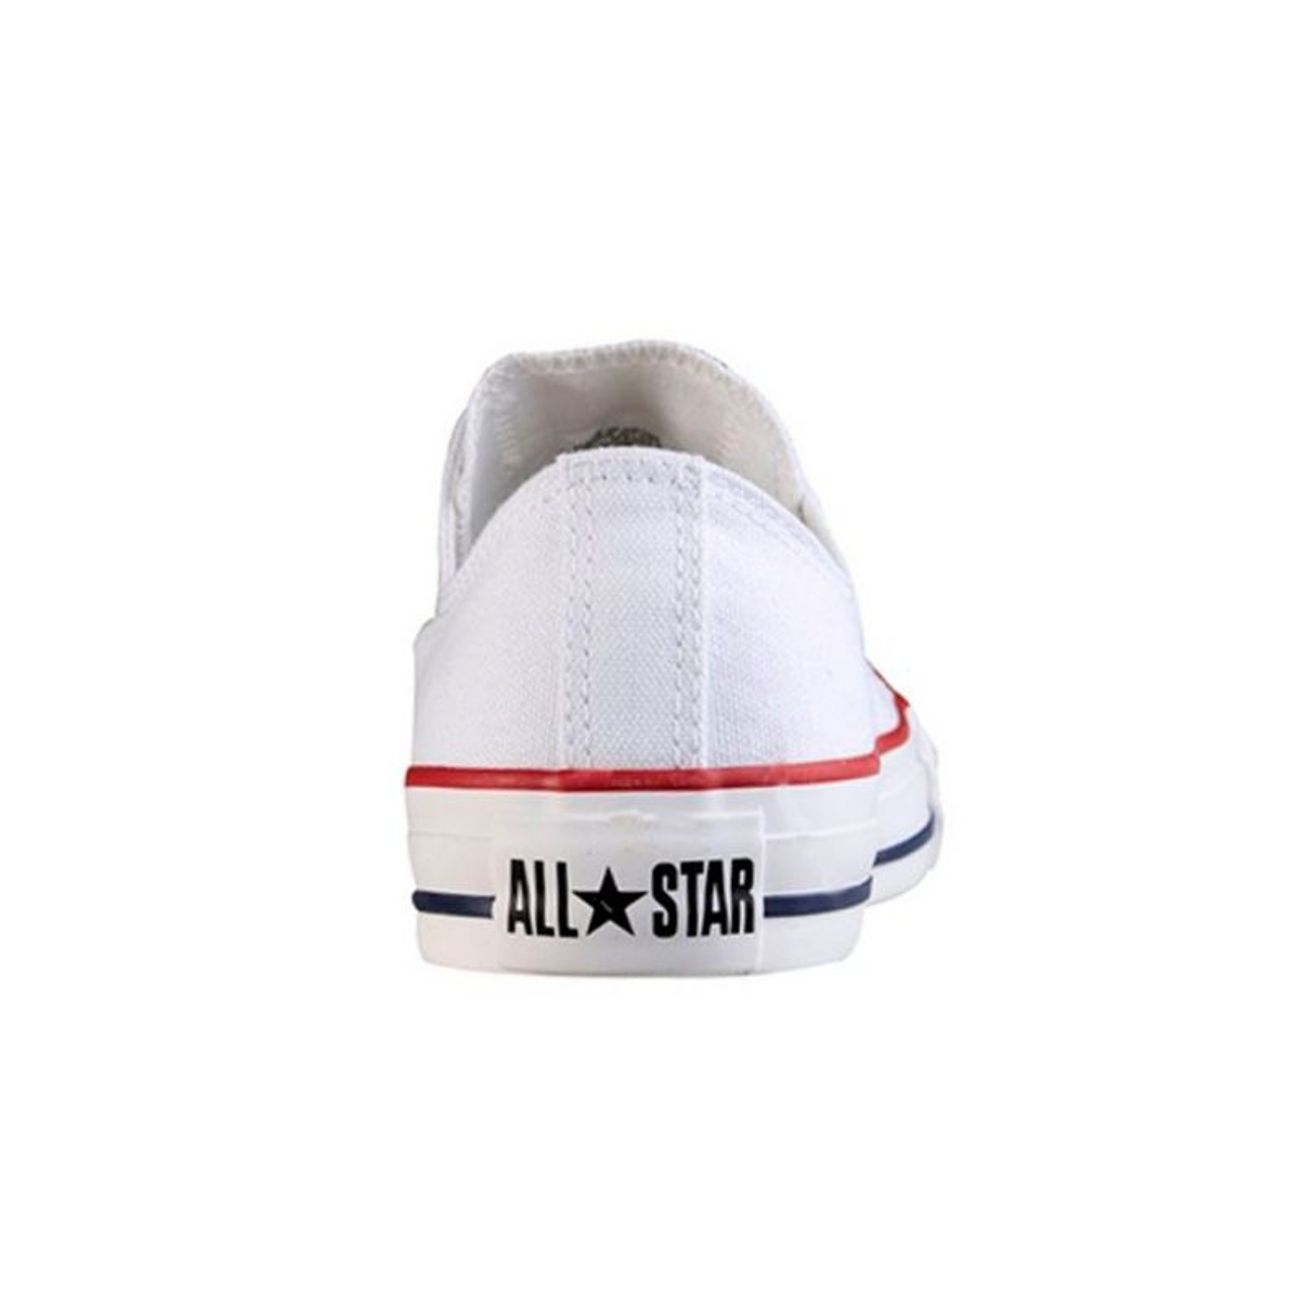 C. Taylor All Star Ox Optical White M7652 Blanc